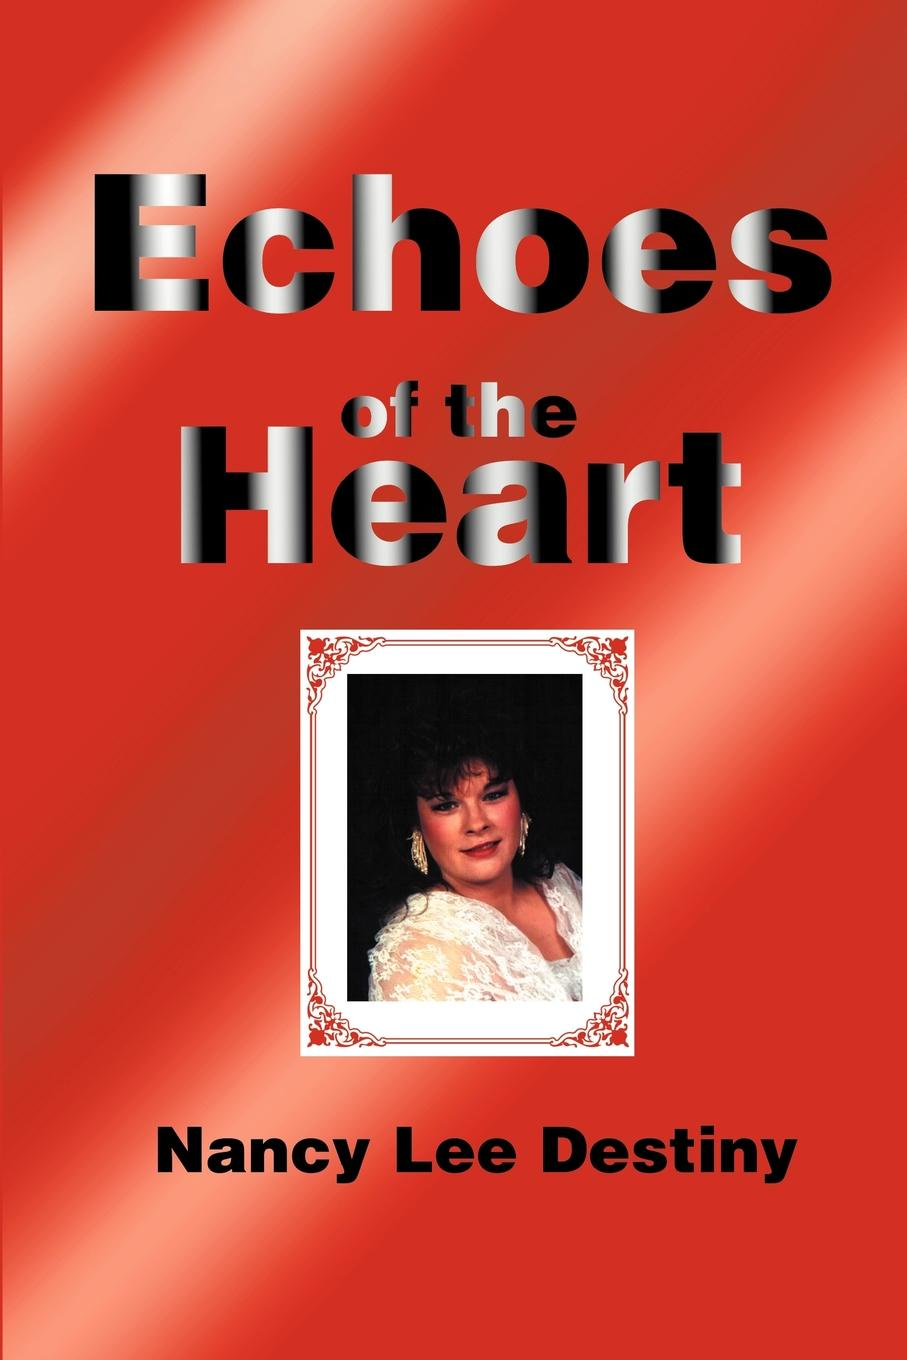 Nancy Lee Destiny Echoes of the Heart. Modern Poetry & Haiku do chong poep sa cold heart thawing the zen poetry of do chong an anthology of poetry about living in the modern world